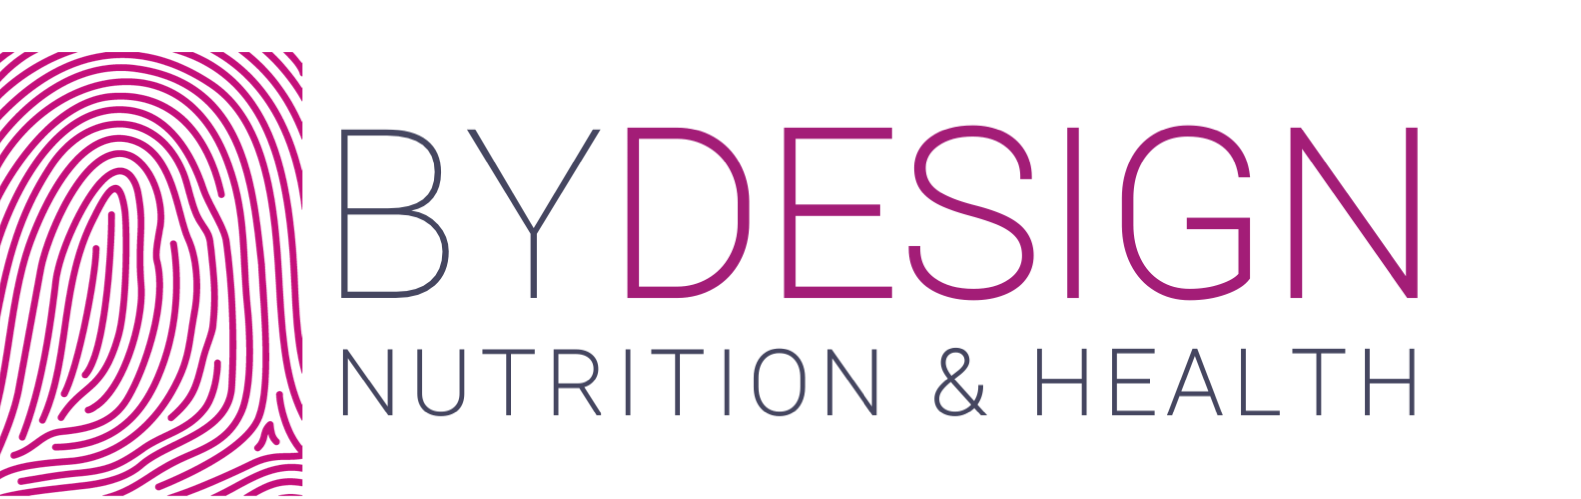 ByDesign Nutrition & Health